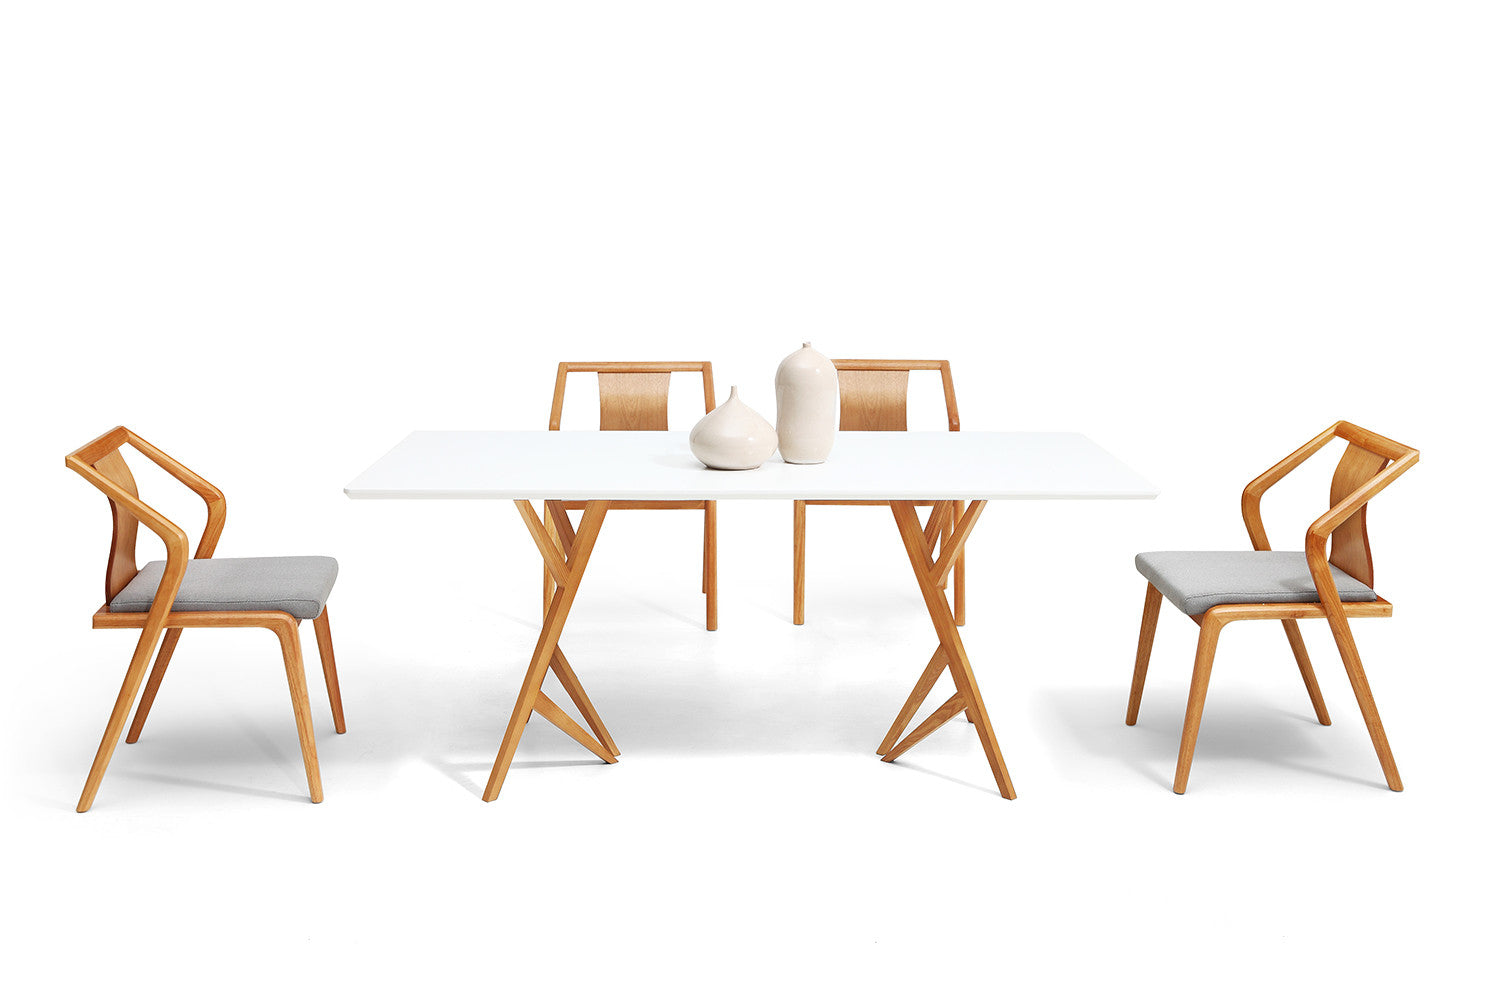 Table de salle manger design scandinave vispa dewarens - Table design salle a manger ...